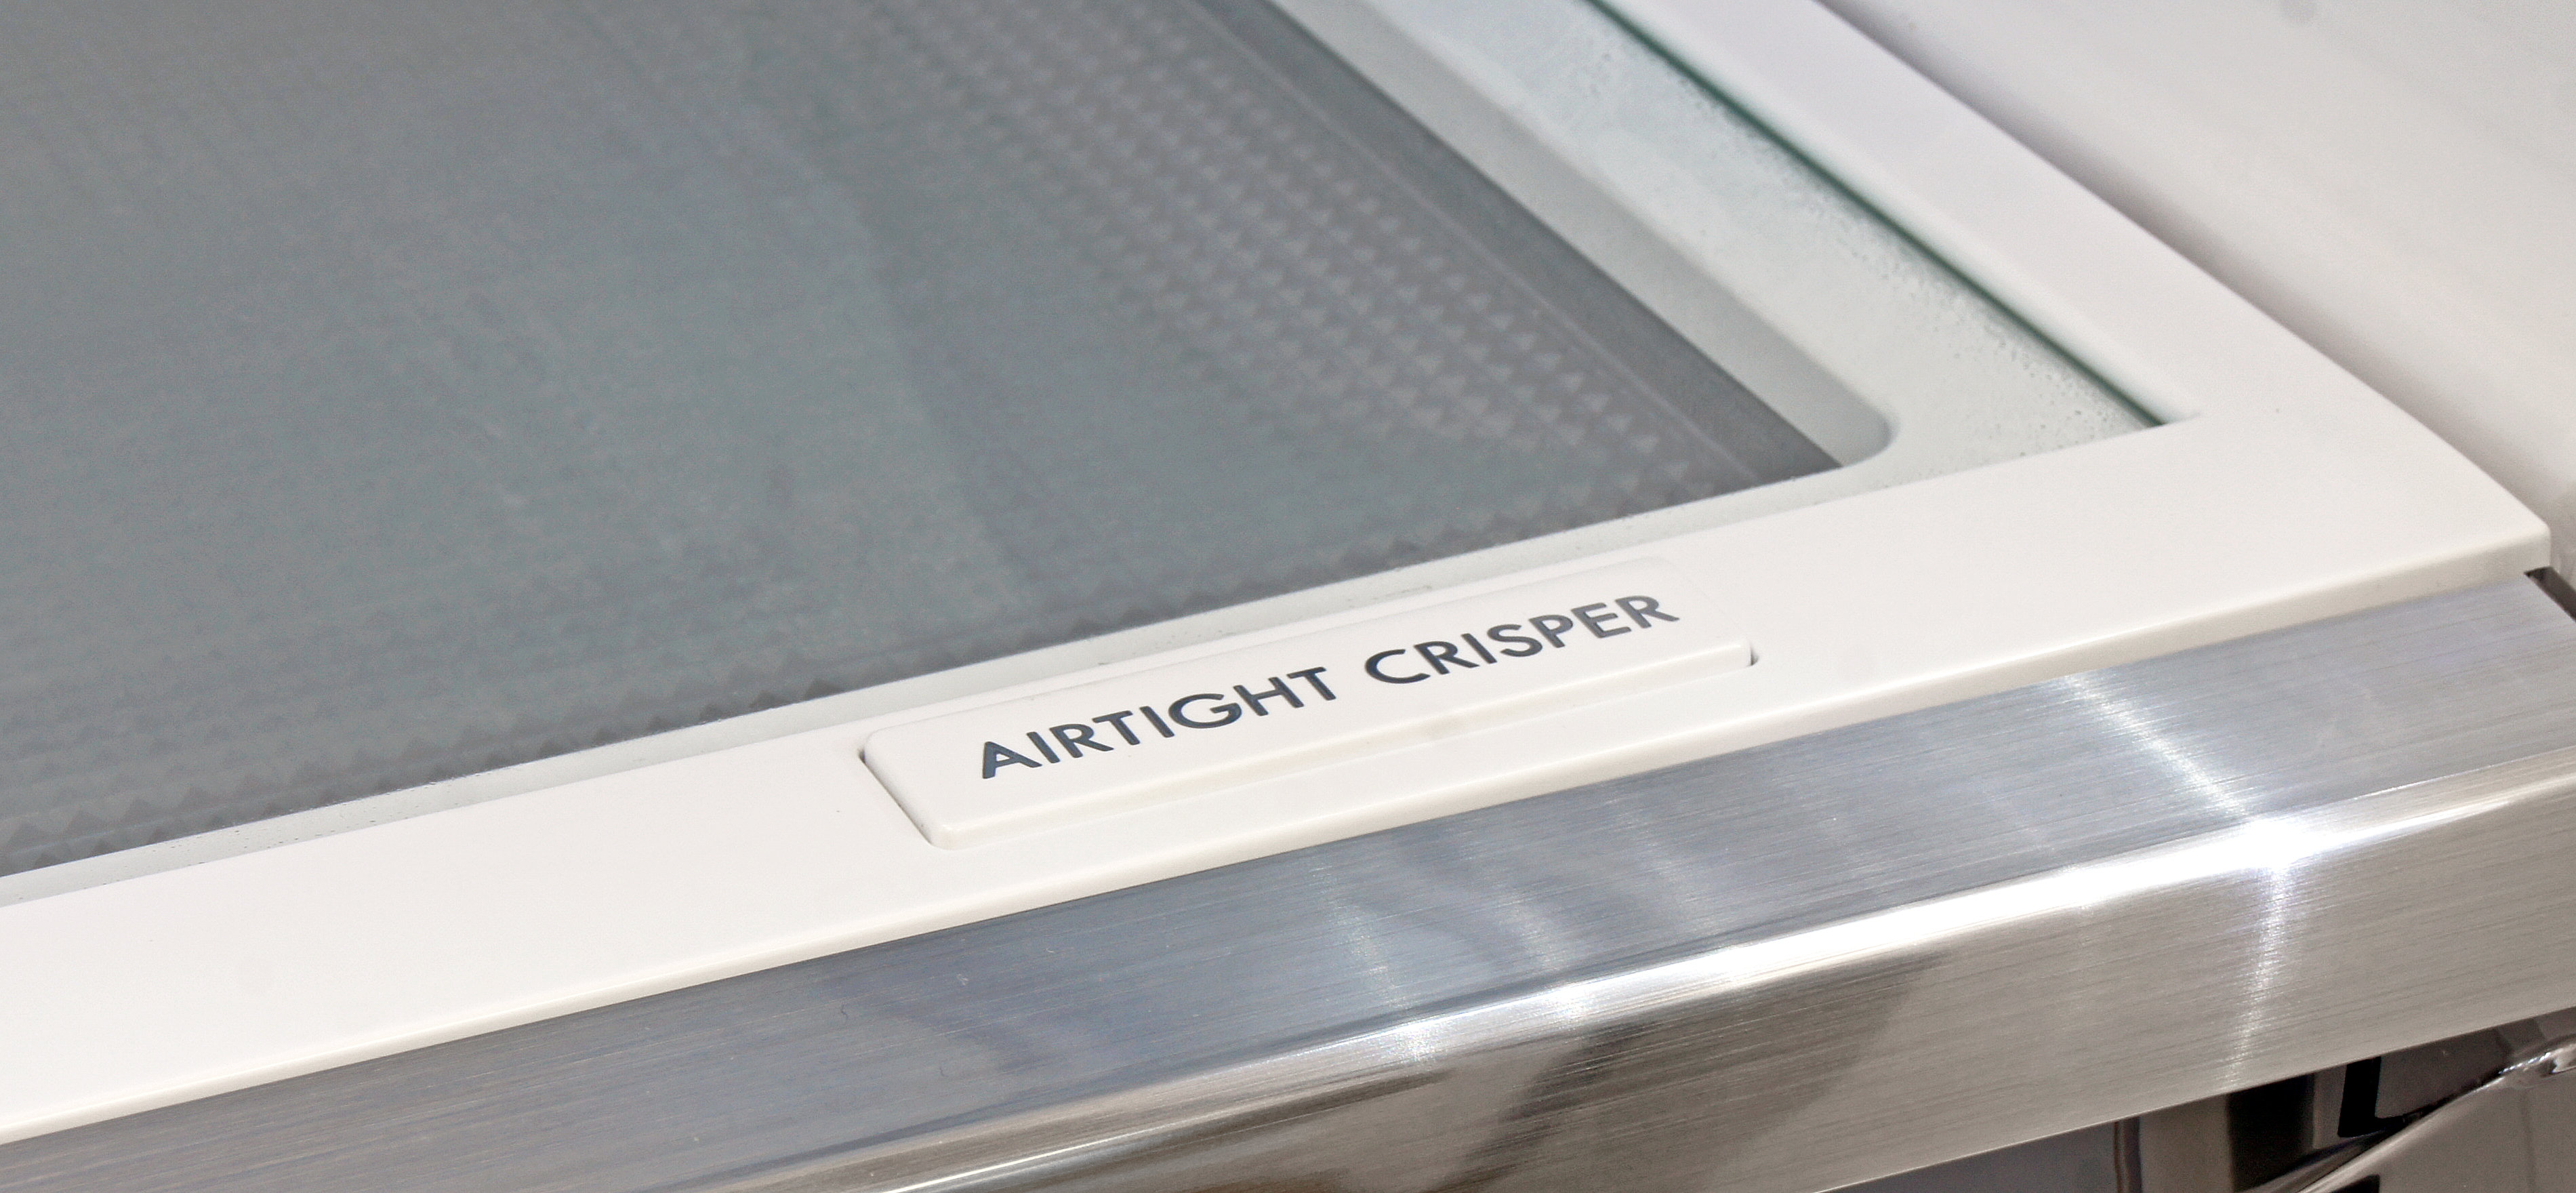 The Kenmore Elite 74025's airtight crisper has a special insulation layer that you can see through the glass shelf above it.